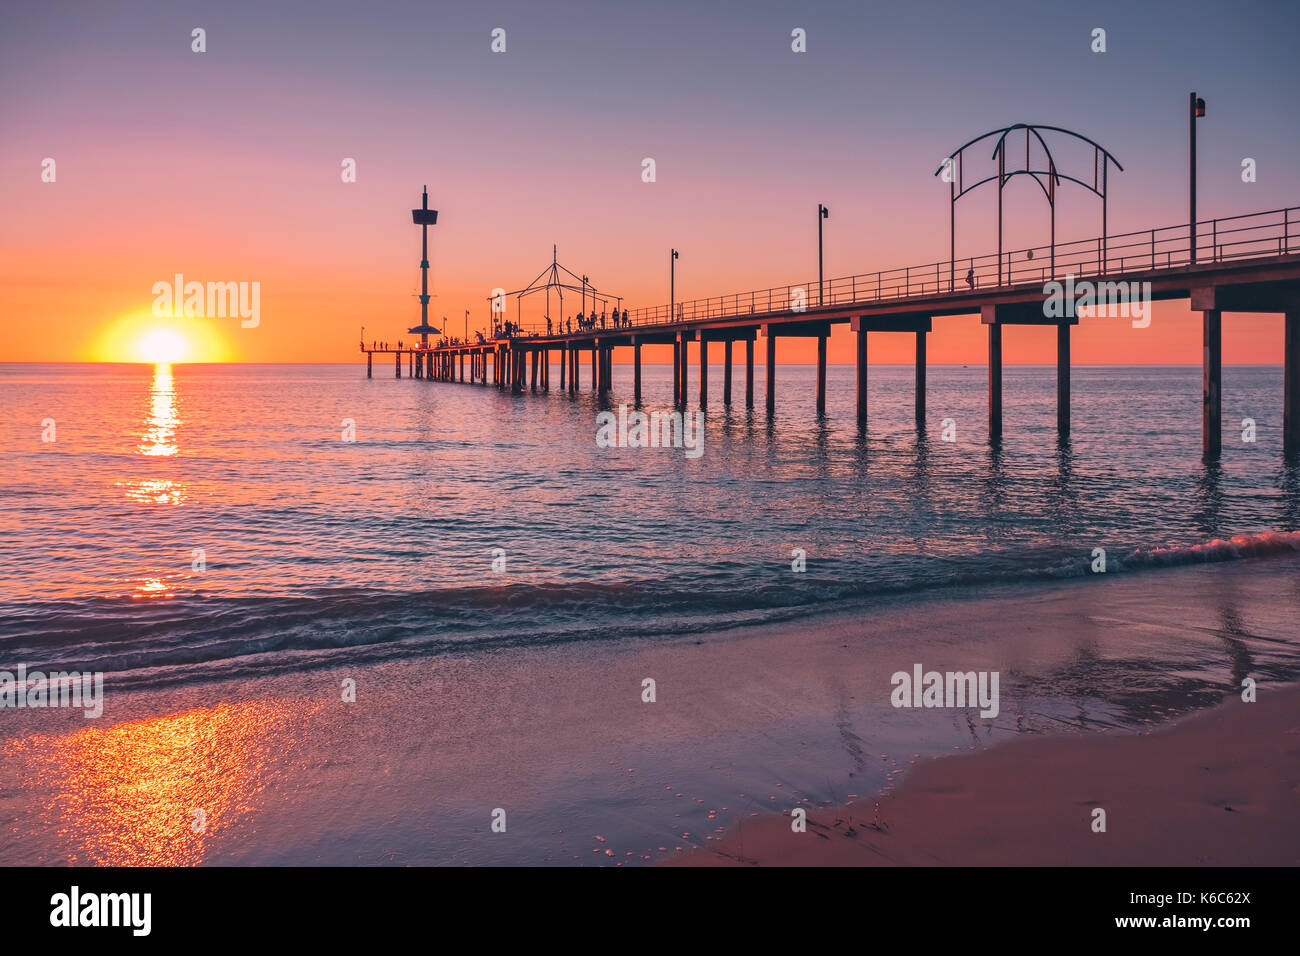 Brighton Beach pier with people at sunset, South Australia - Stock Image